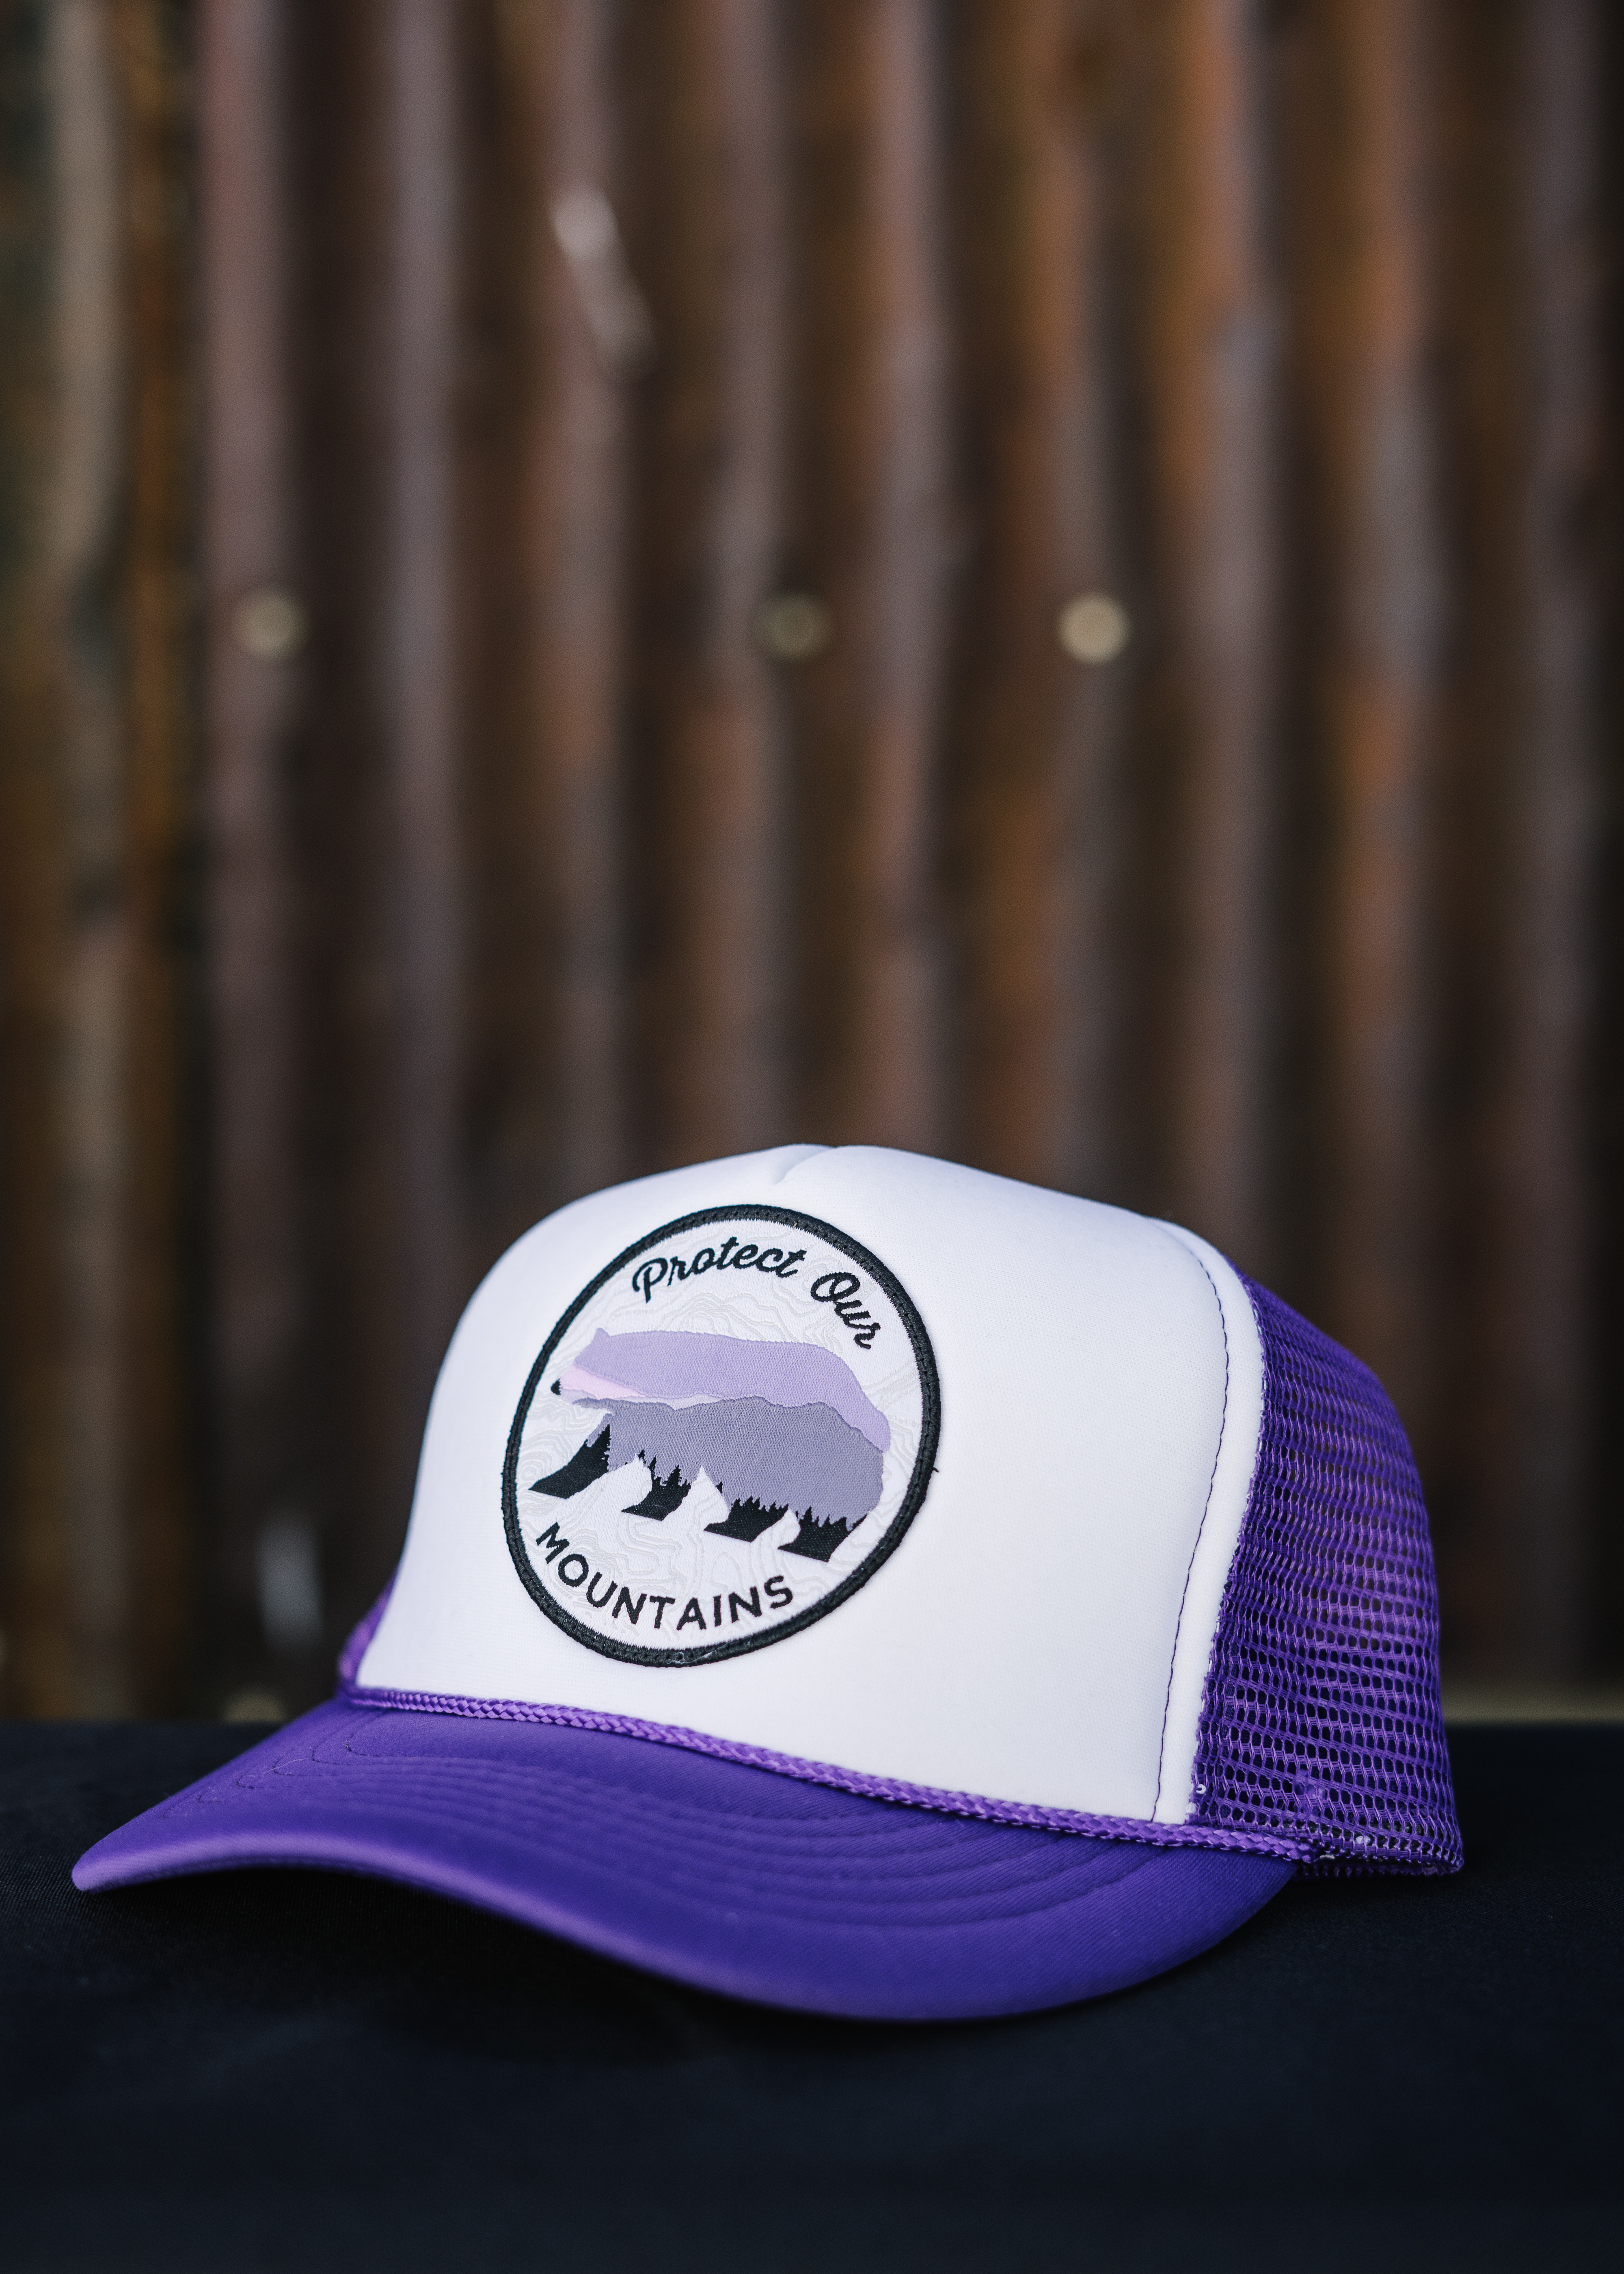 Protect Our Mountains Youth Trucker Hat 00016